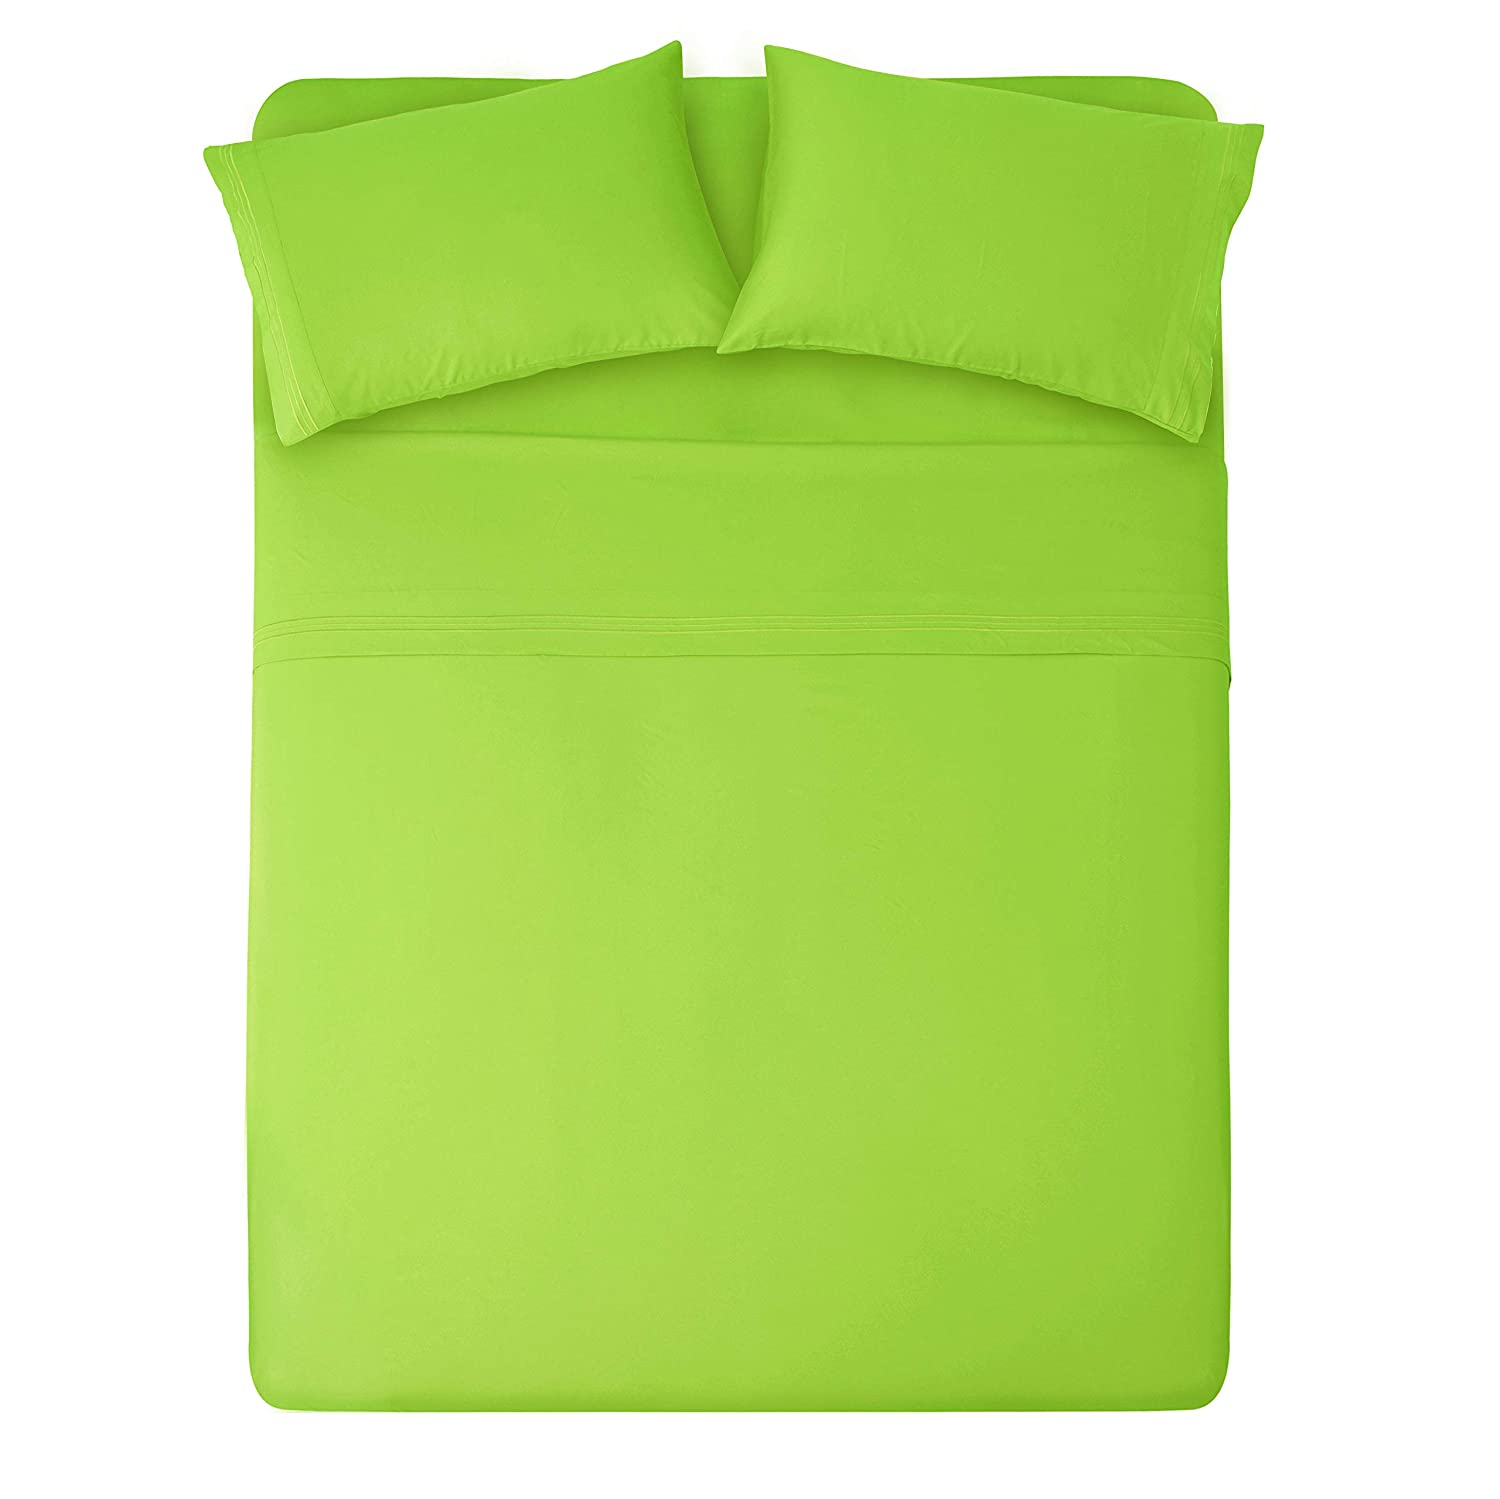 HONEYMOON HOME FASHIONS Bedding Twin Sheet Set Triple Row Embroidery 3 Pieces Lime Green